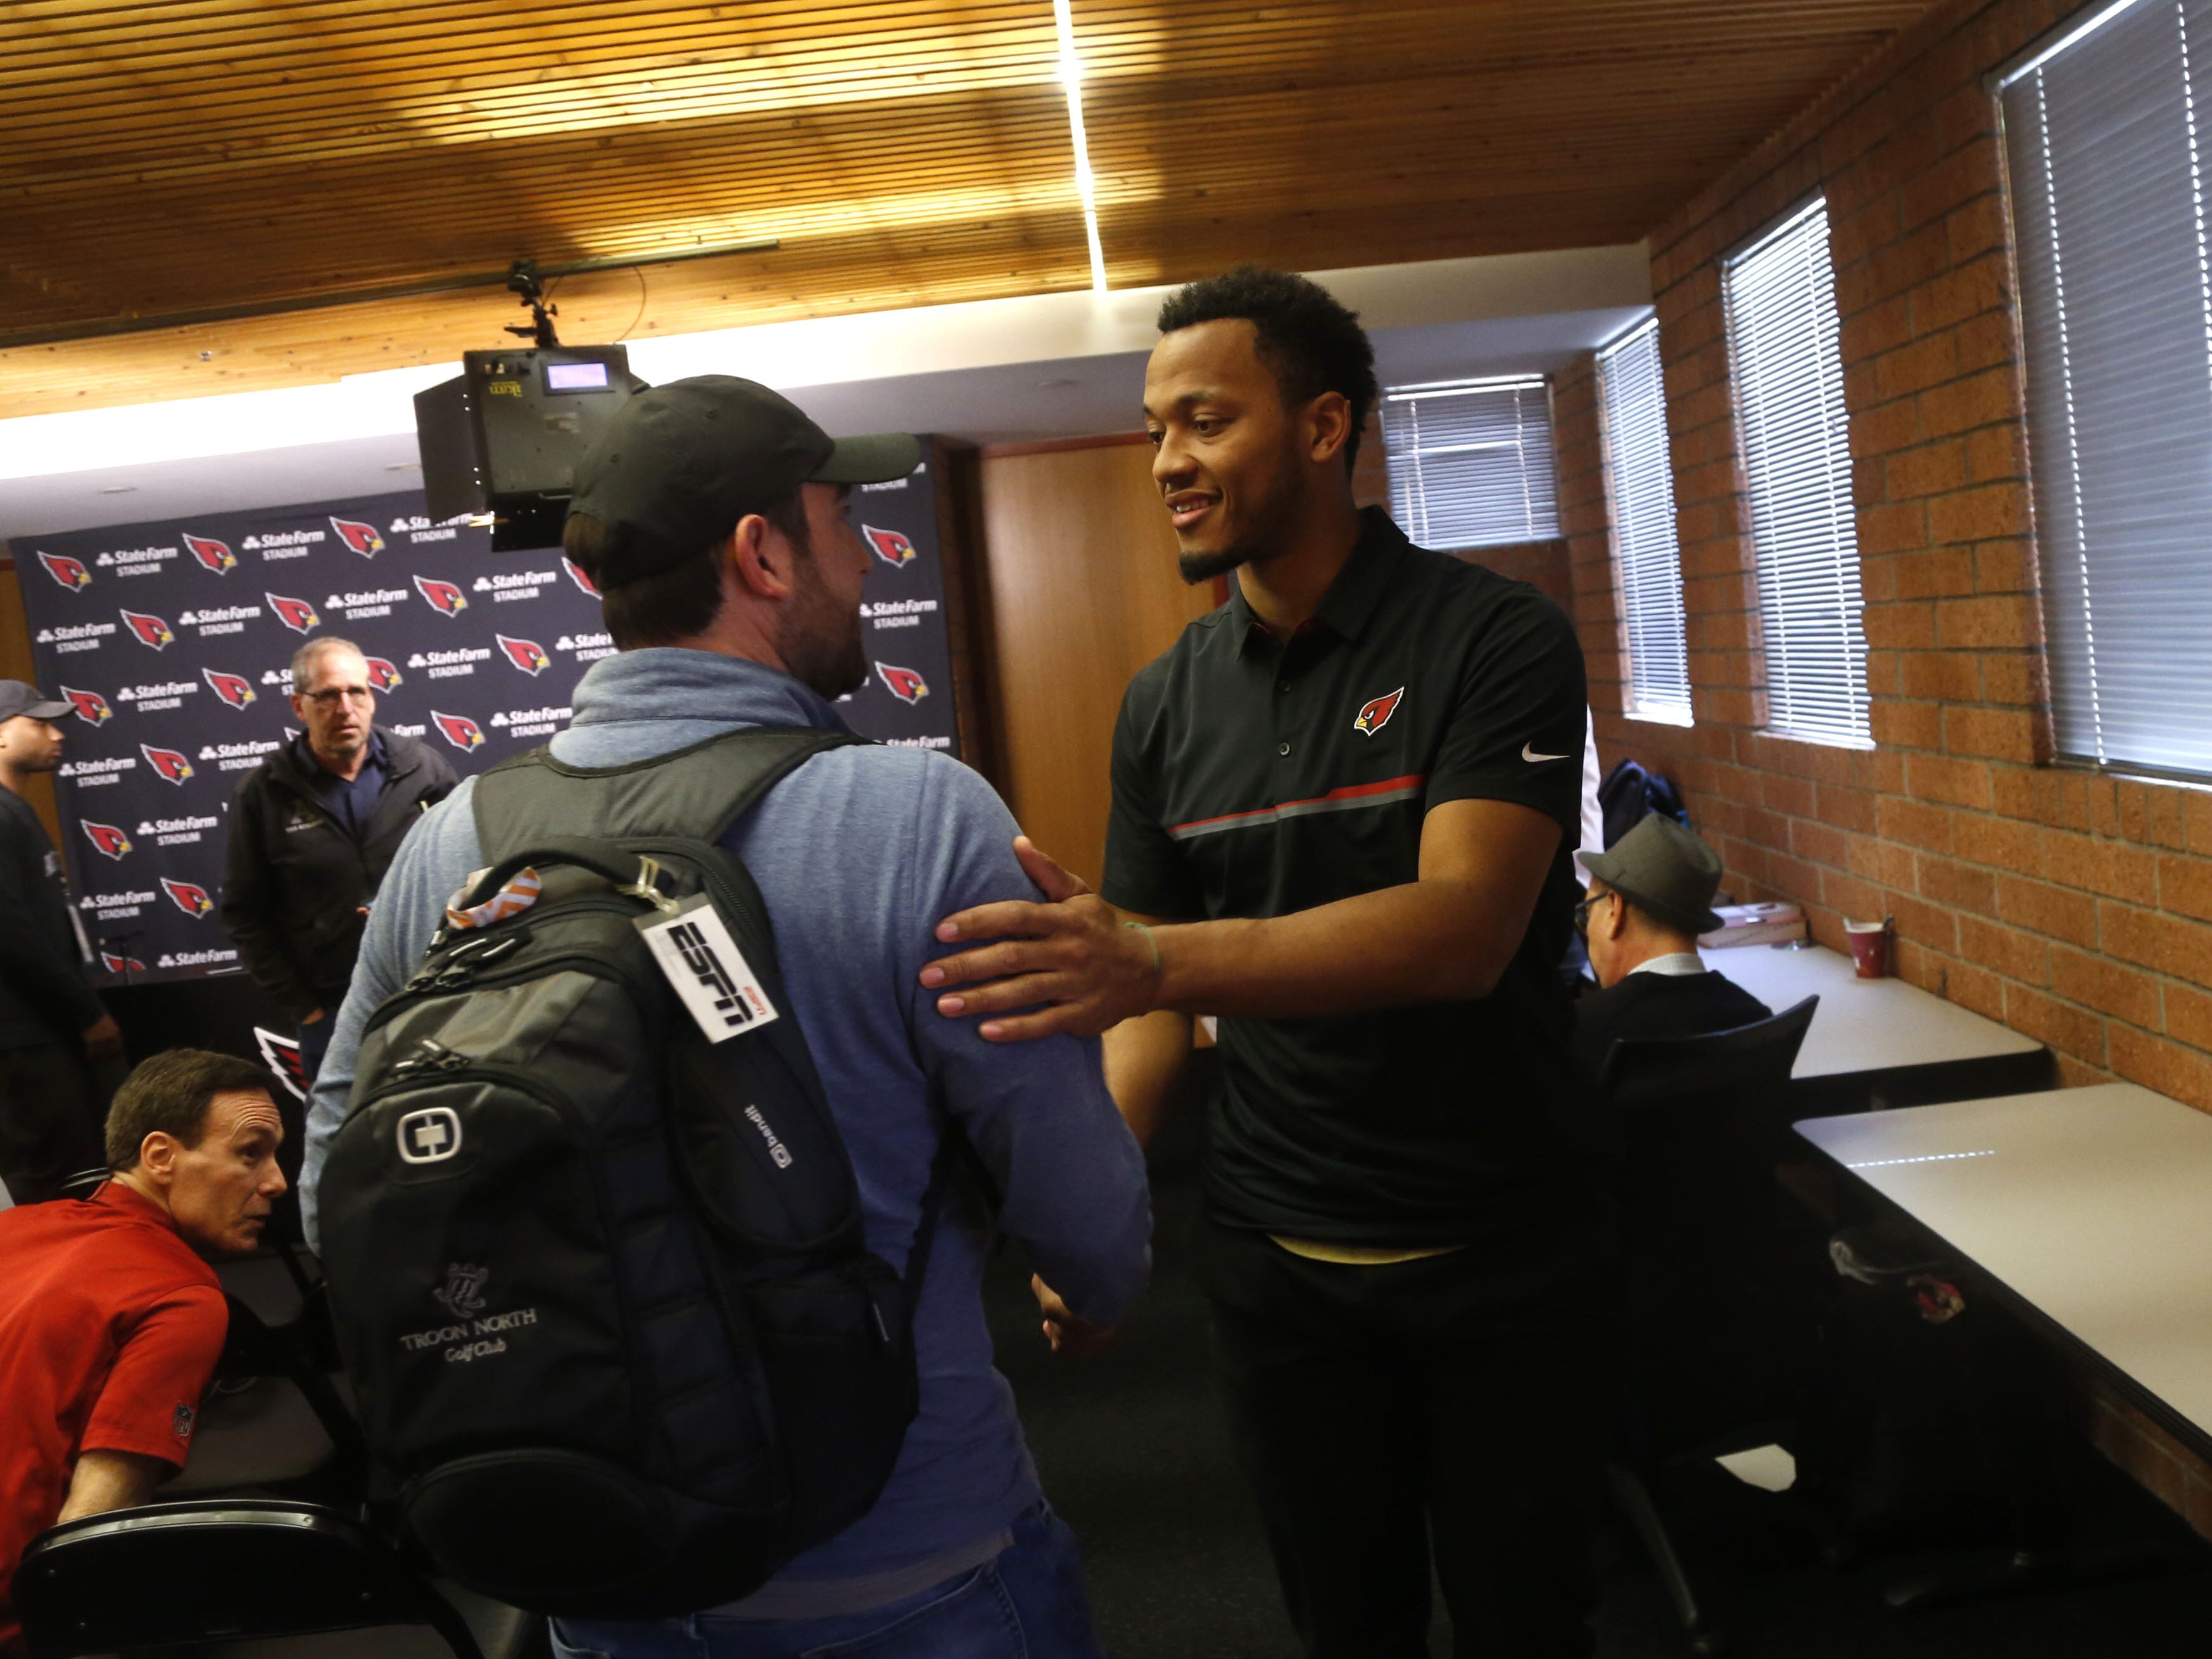 Brett Hundley shakes the hand of ESPN's Josh Weinfuss after his introductory press conference at the Arizona Cardinals Training Facility in Tempe, Ariz. on March 14, 2019.